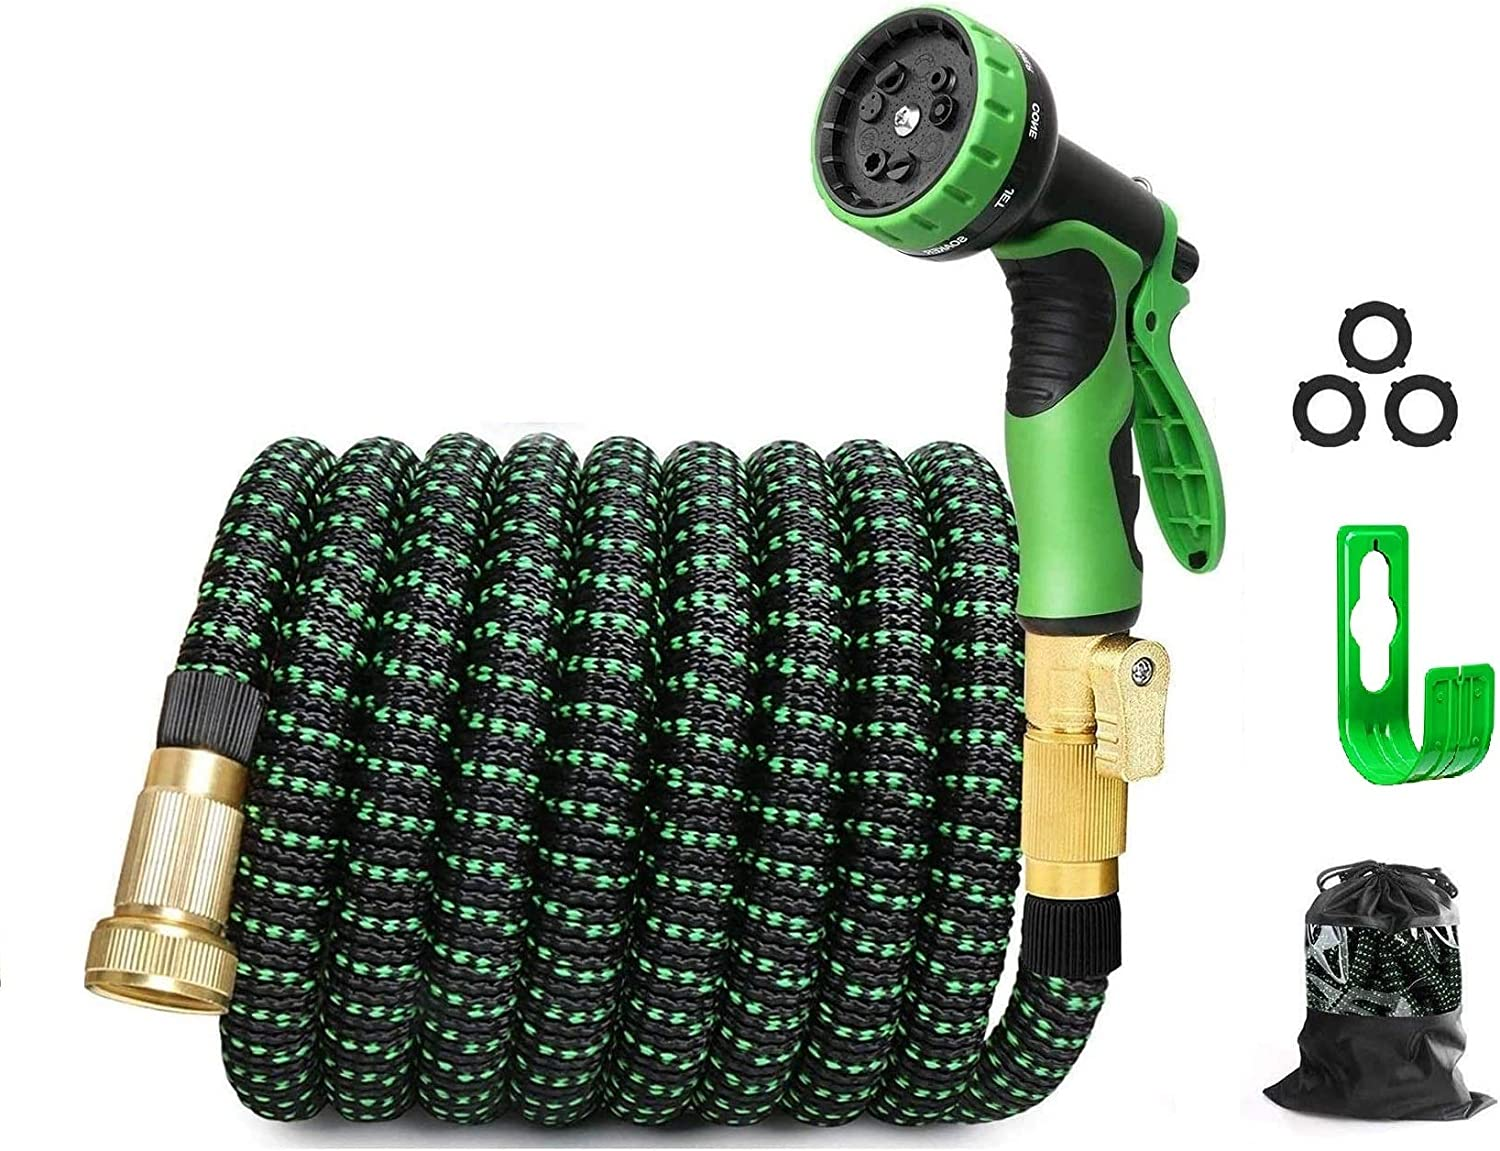 """MTB Upgraded Expandable Garden Hose,75-ft Extra Strength Fabric Garden Water Hose, with Spray Nozzle and 3/4"""" Solid Brass Fittings…"""